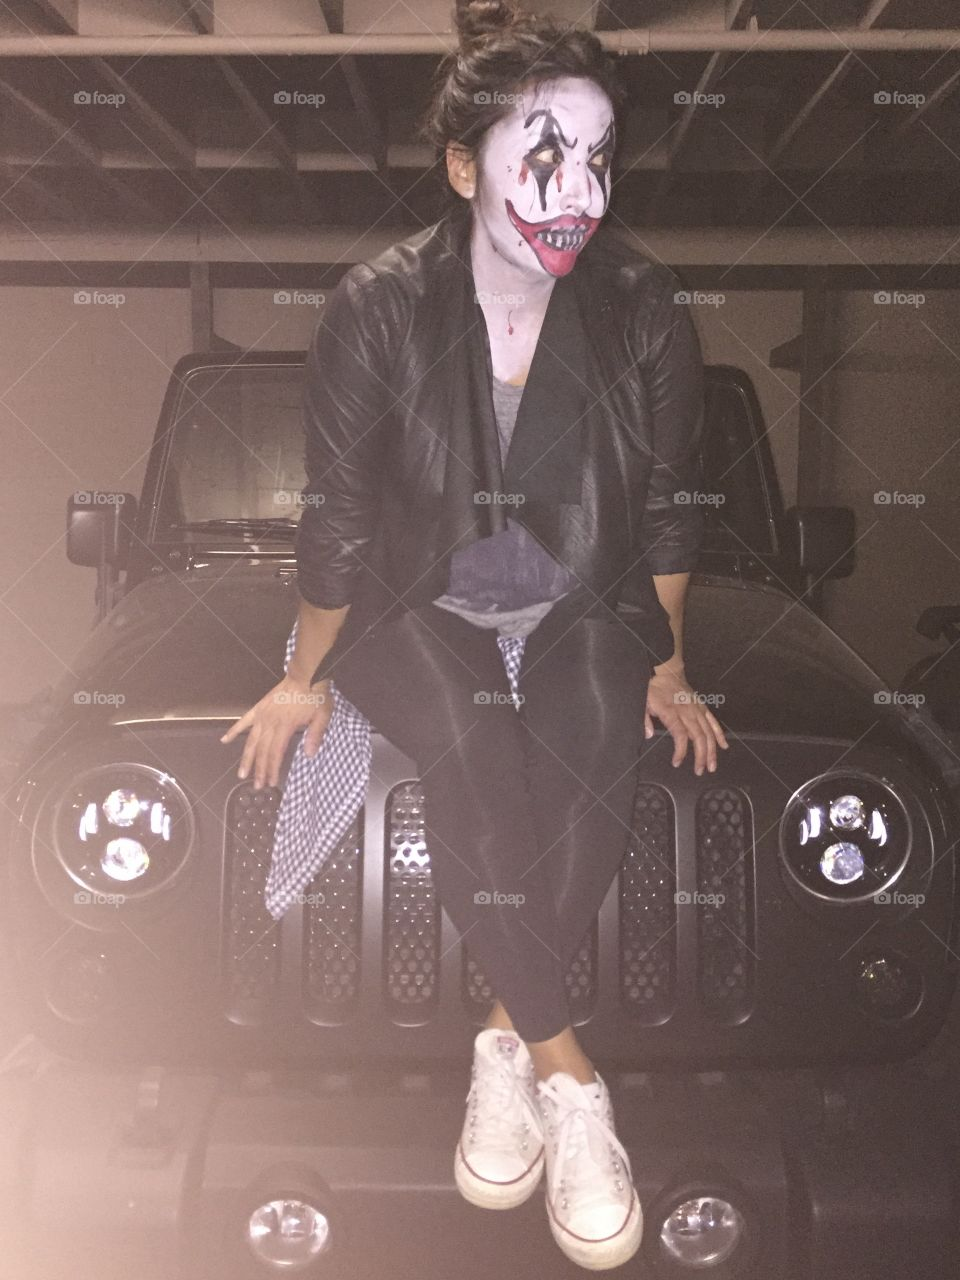 Scary Clown, Halloween, Jeepers Creepers, Jeep Clown, Her, She Clown